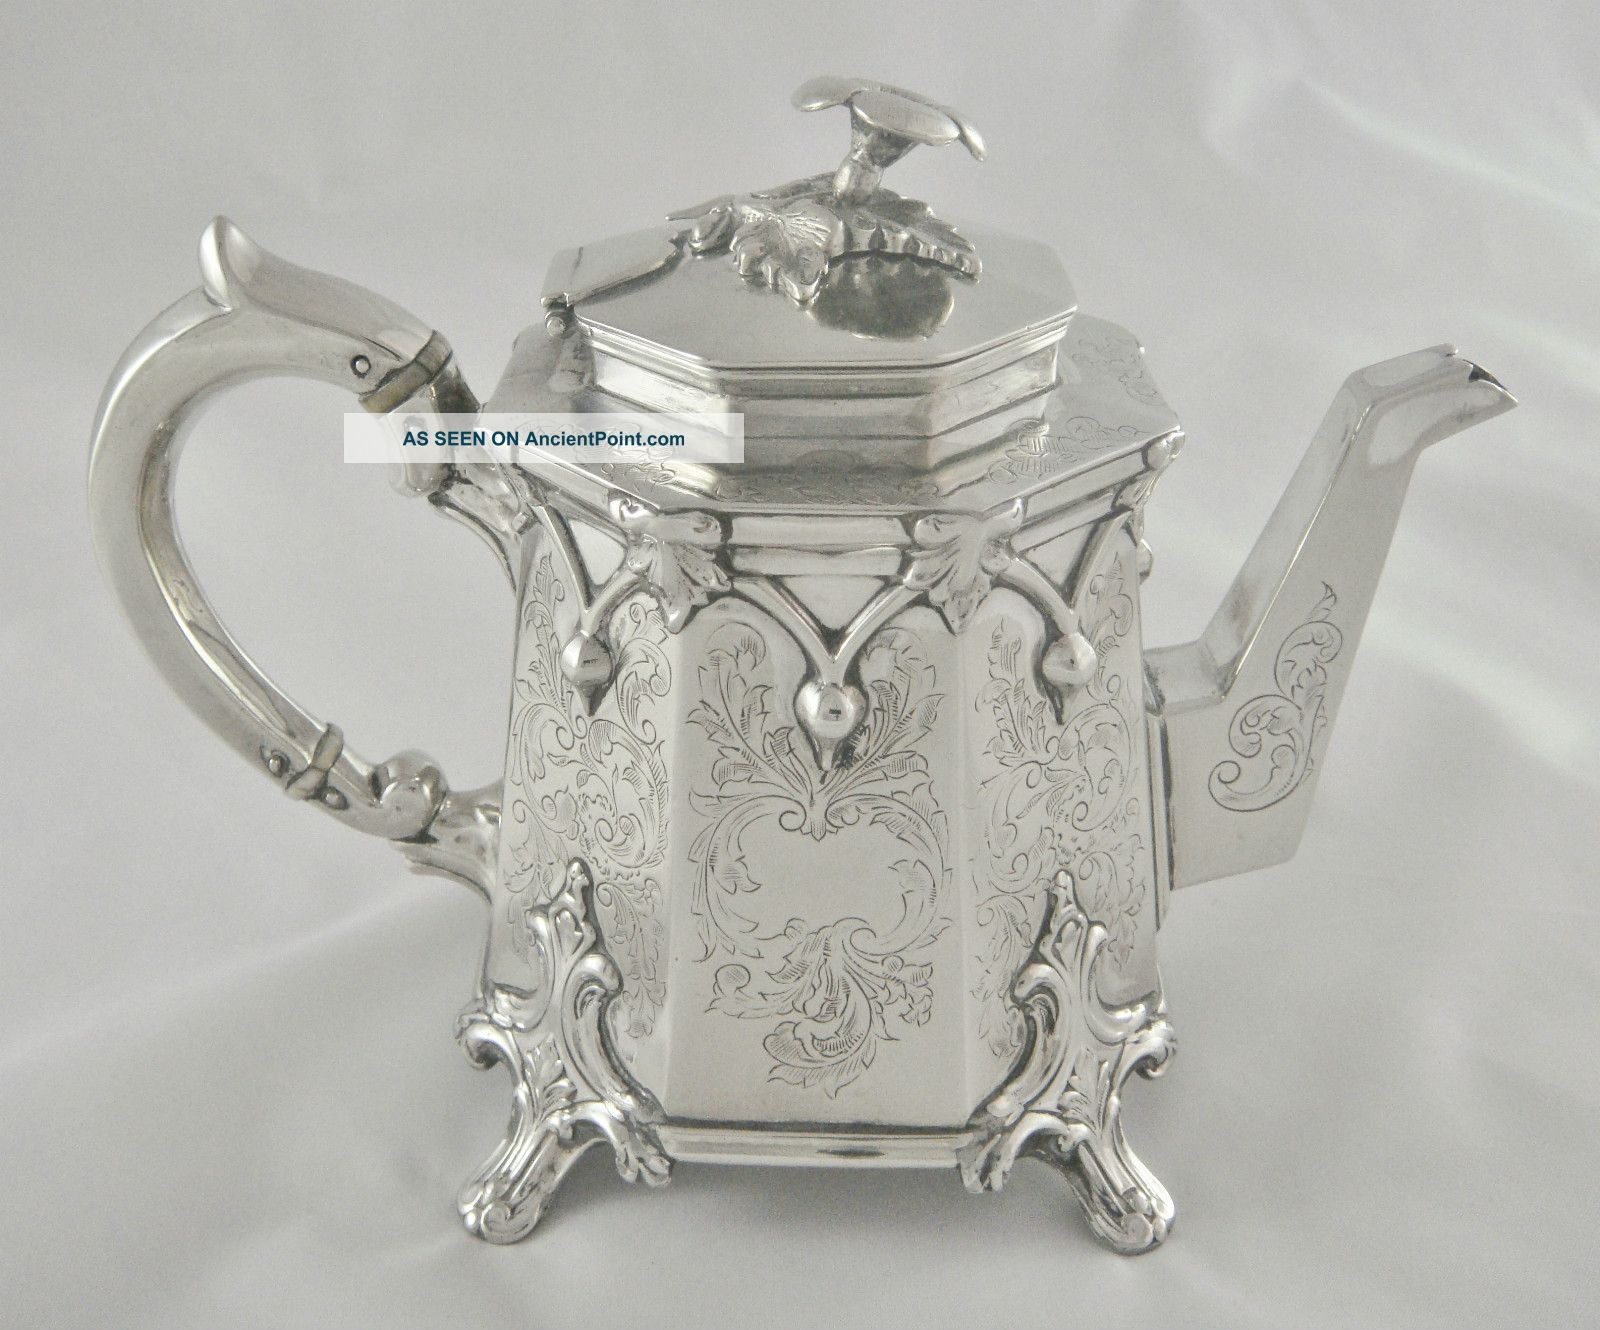 Very Unusual Antique Vintage Ornate Octagonal Silver Plated Tea Pot Tea/Coffee Pots & Sets photo